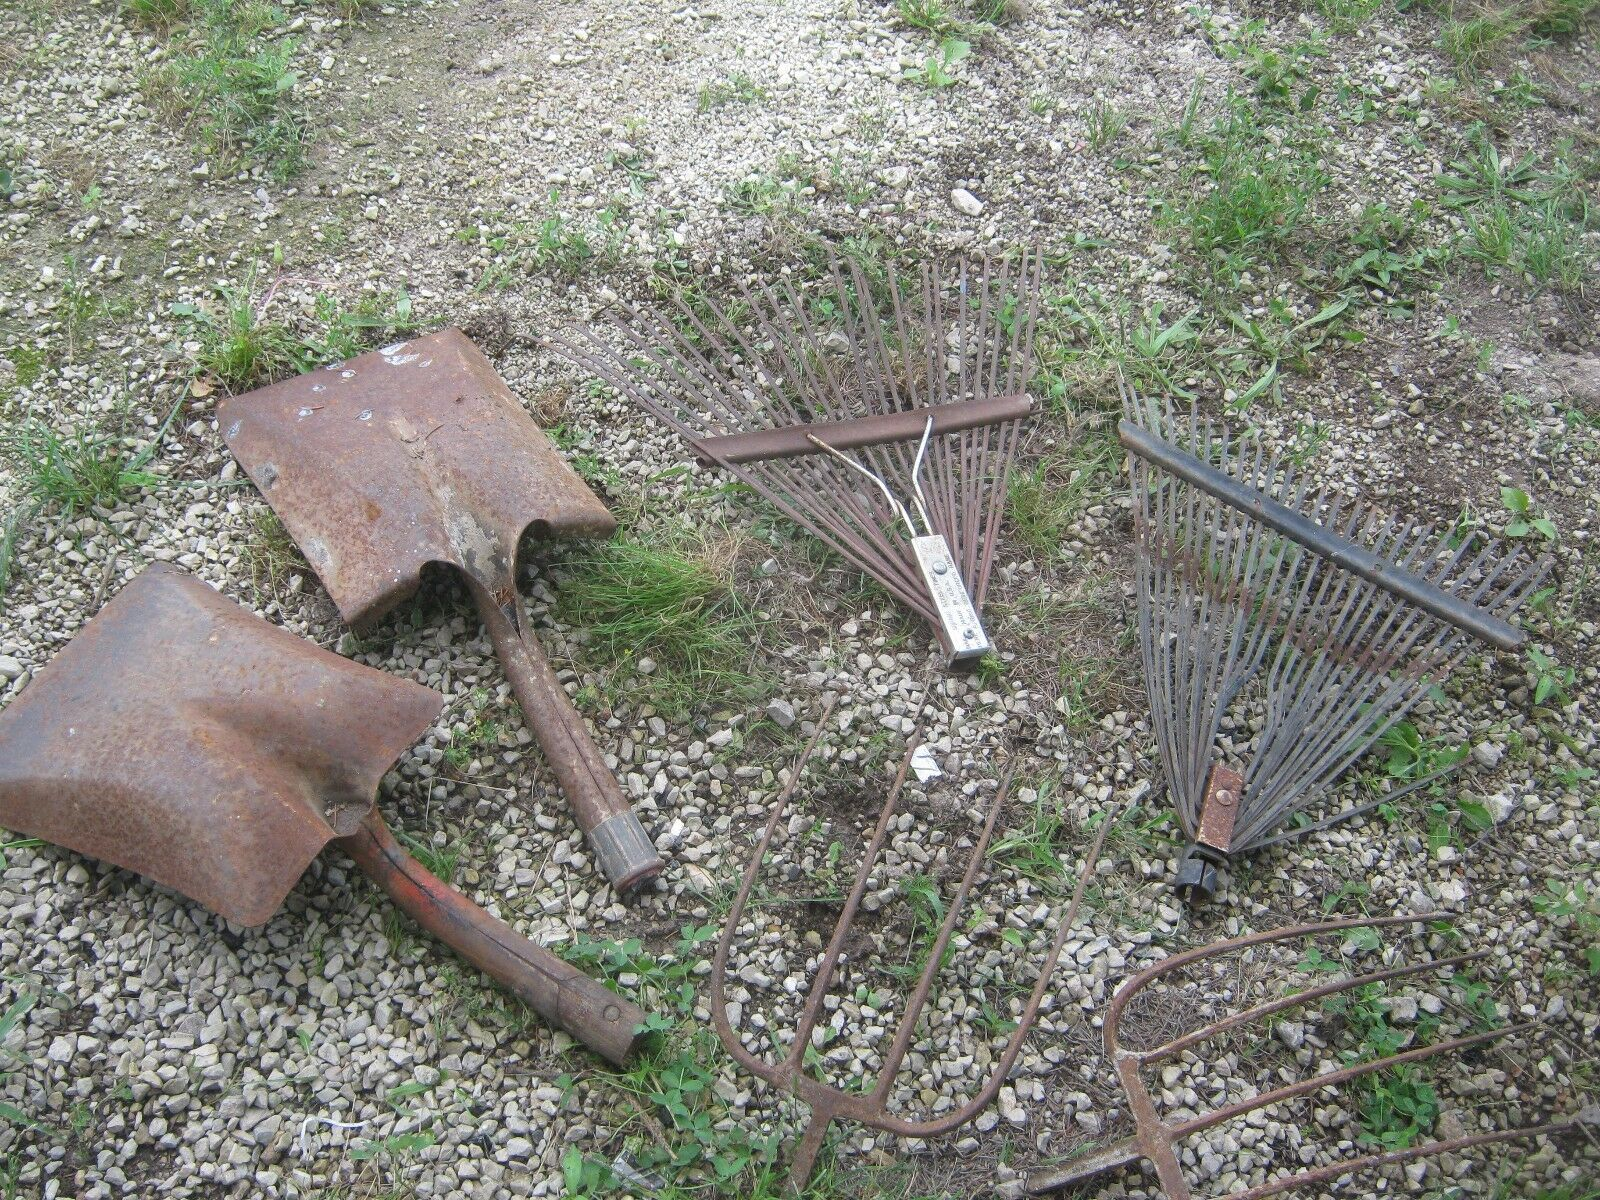 6 Used Assorted Shovels Rakes Forks Garden Tools good for decor